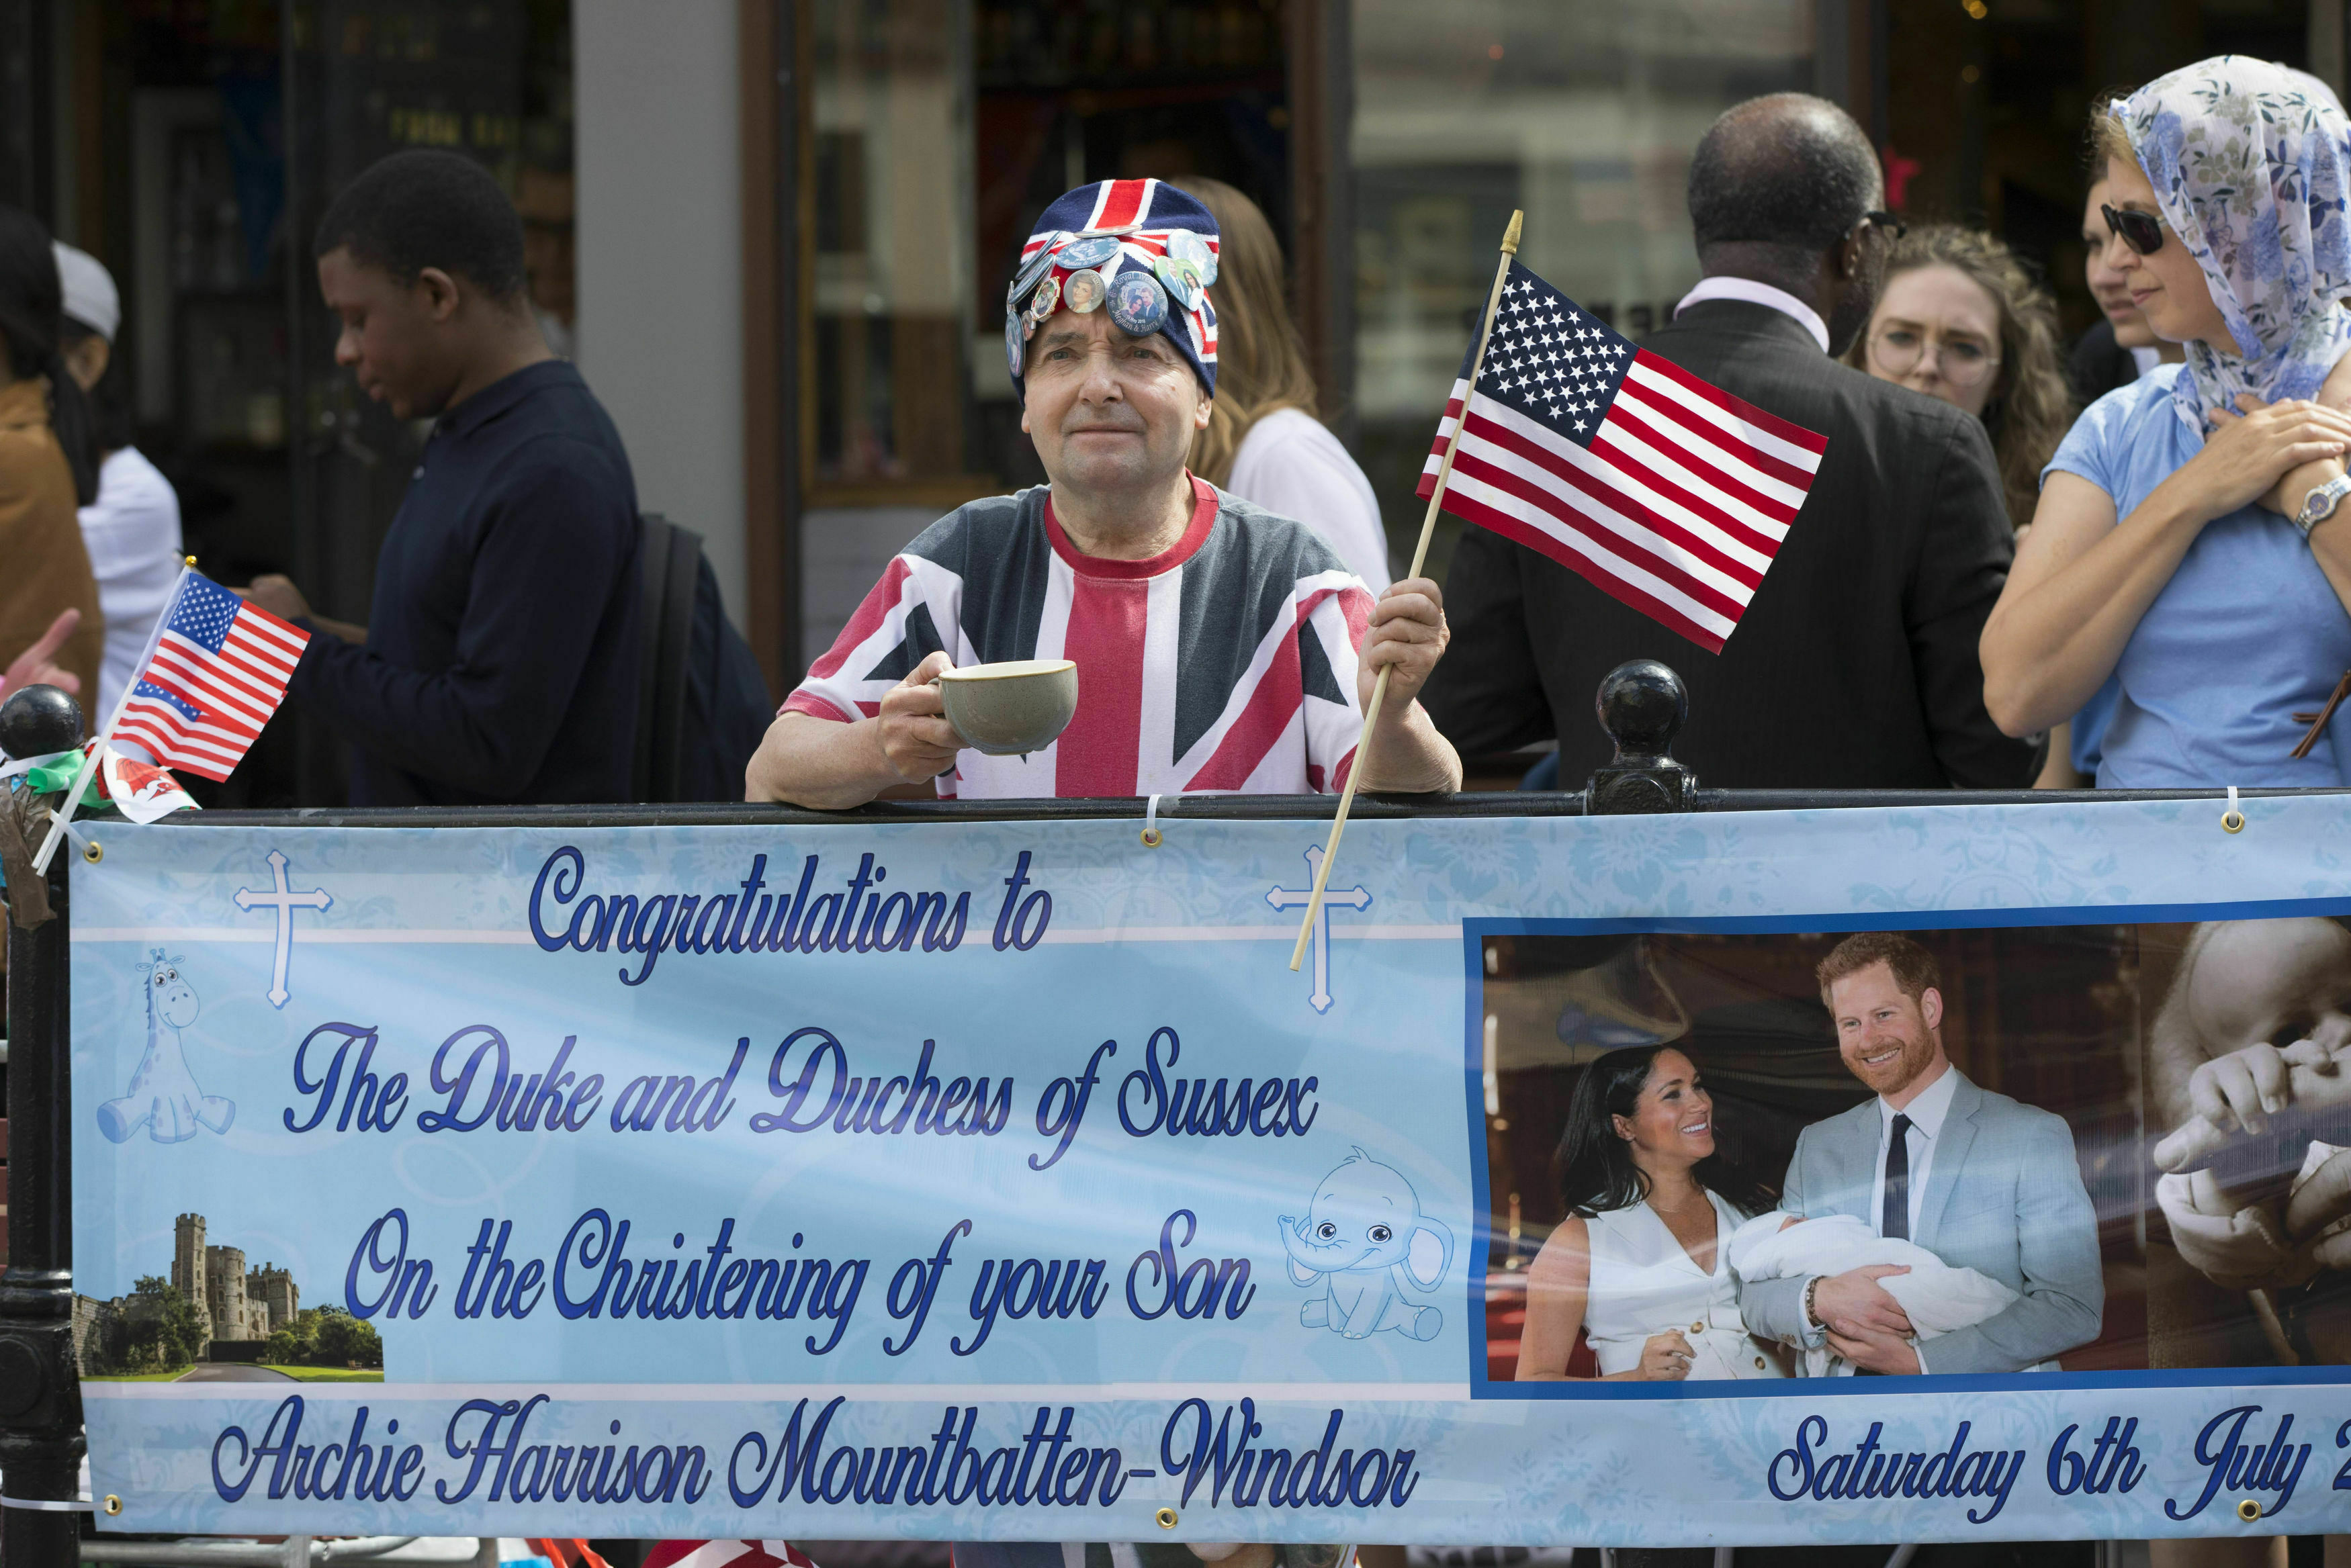 Royal superfan John Loughrey holds a sign in celebration of the royal christening of Archie, the son of Britain's Prince Harry and Meghan, Duchess of Sussex, outside Windsor Castle in England, Saturday, July 6, 2019. The 2-month-old son of the Duke and Duchess of Sussex will be baptized Saturday in a private chapel at the castle by Archbishop of Canterbury Justin Welby, head of the Church of England. (Rick Findler/PA via AP)